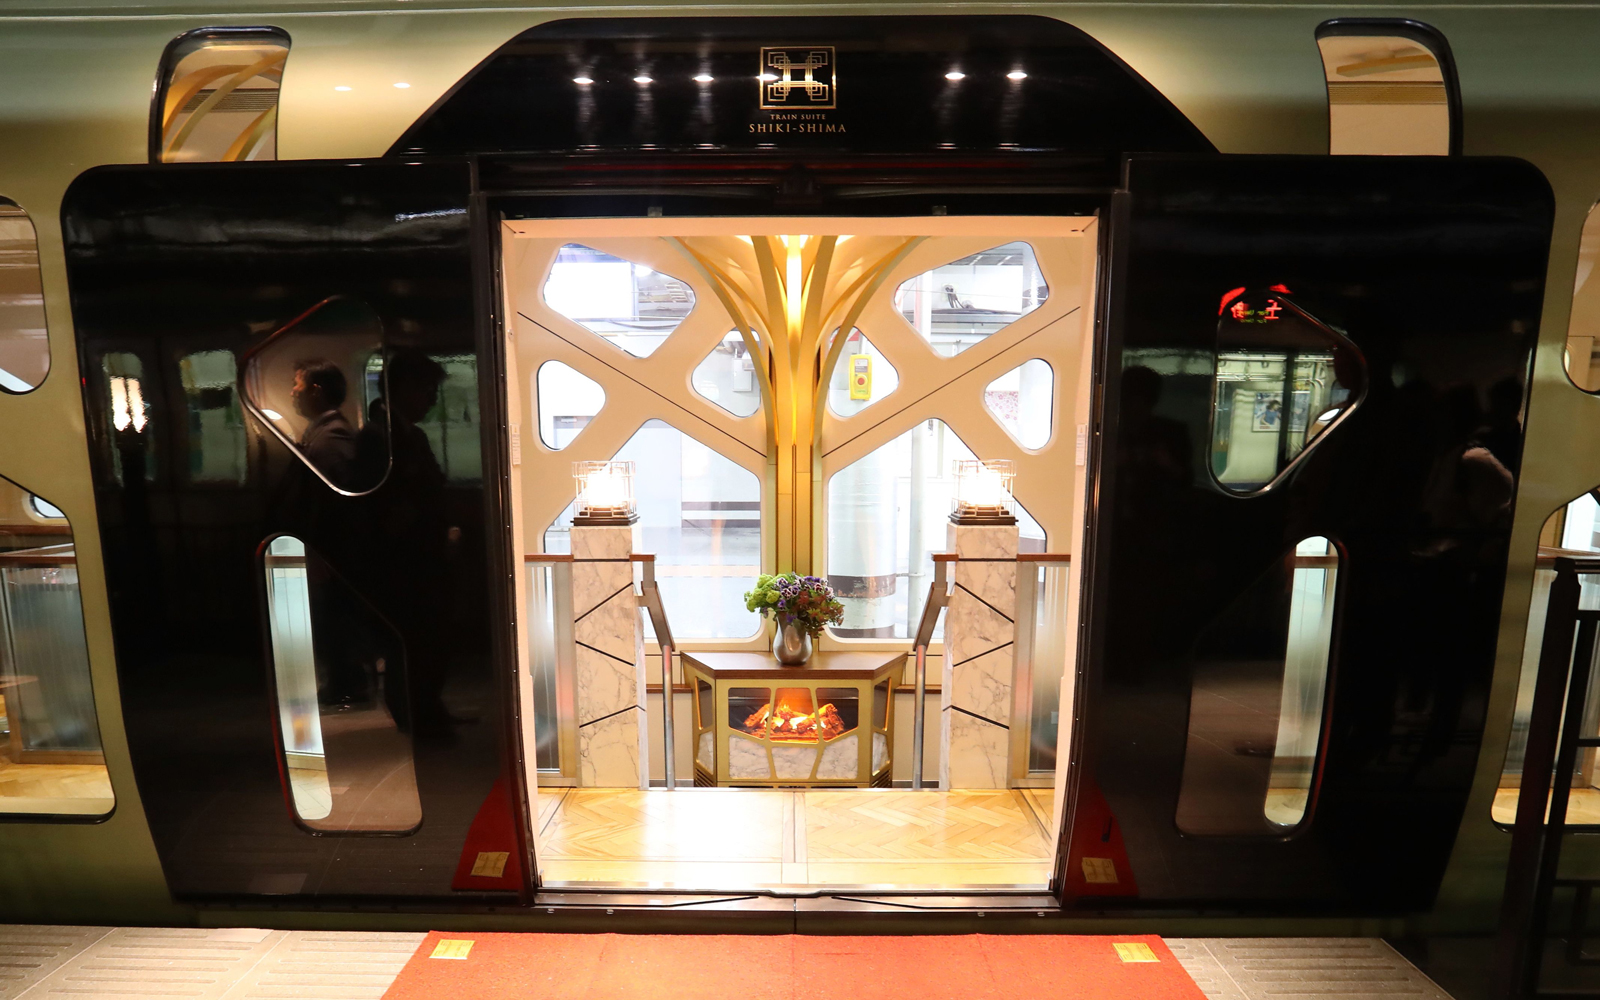 Japan's Newest Luxury Train Has Hot Tubs and Fireplaces — and It's Sold Out Through Next Year